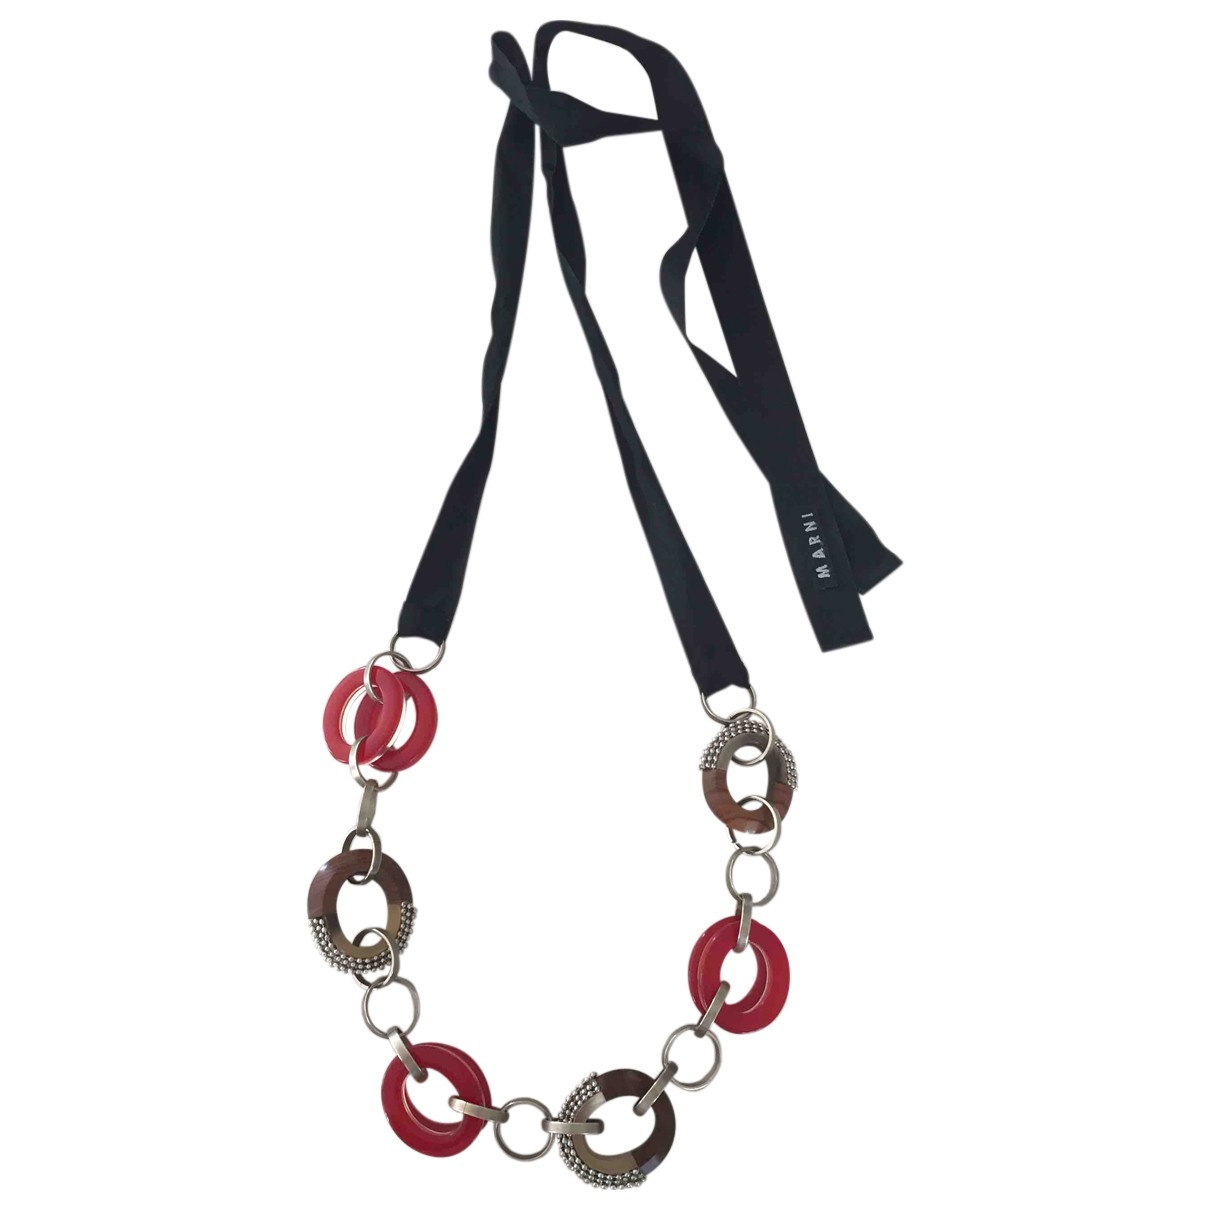 Marni \N Multicolour necklace for Women \N